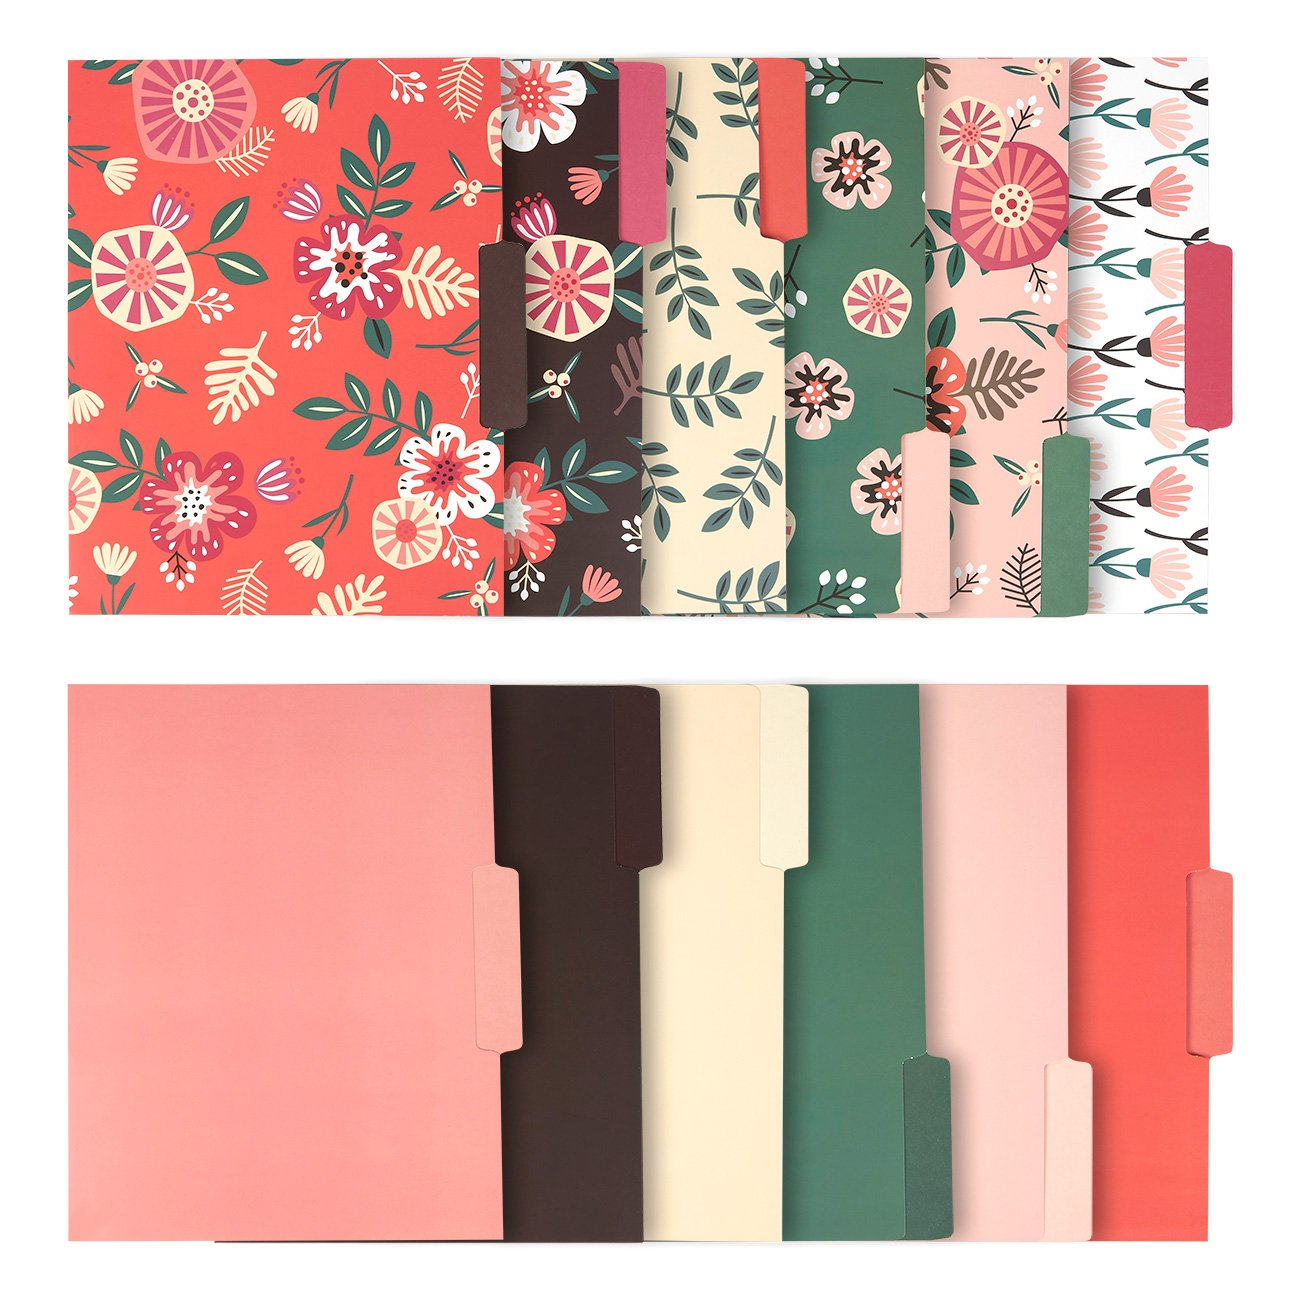 Decorative File Folders - 12-Count Colored File Folders Letter Size, 1/3-Cut Tabs, Includes 6 Cute Floral Designs and 6 Solid Colors, Office Supplies File Filing Organizers, 9.5 x 11.5 Inches